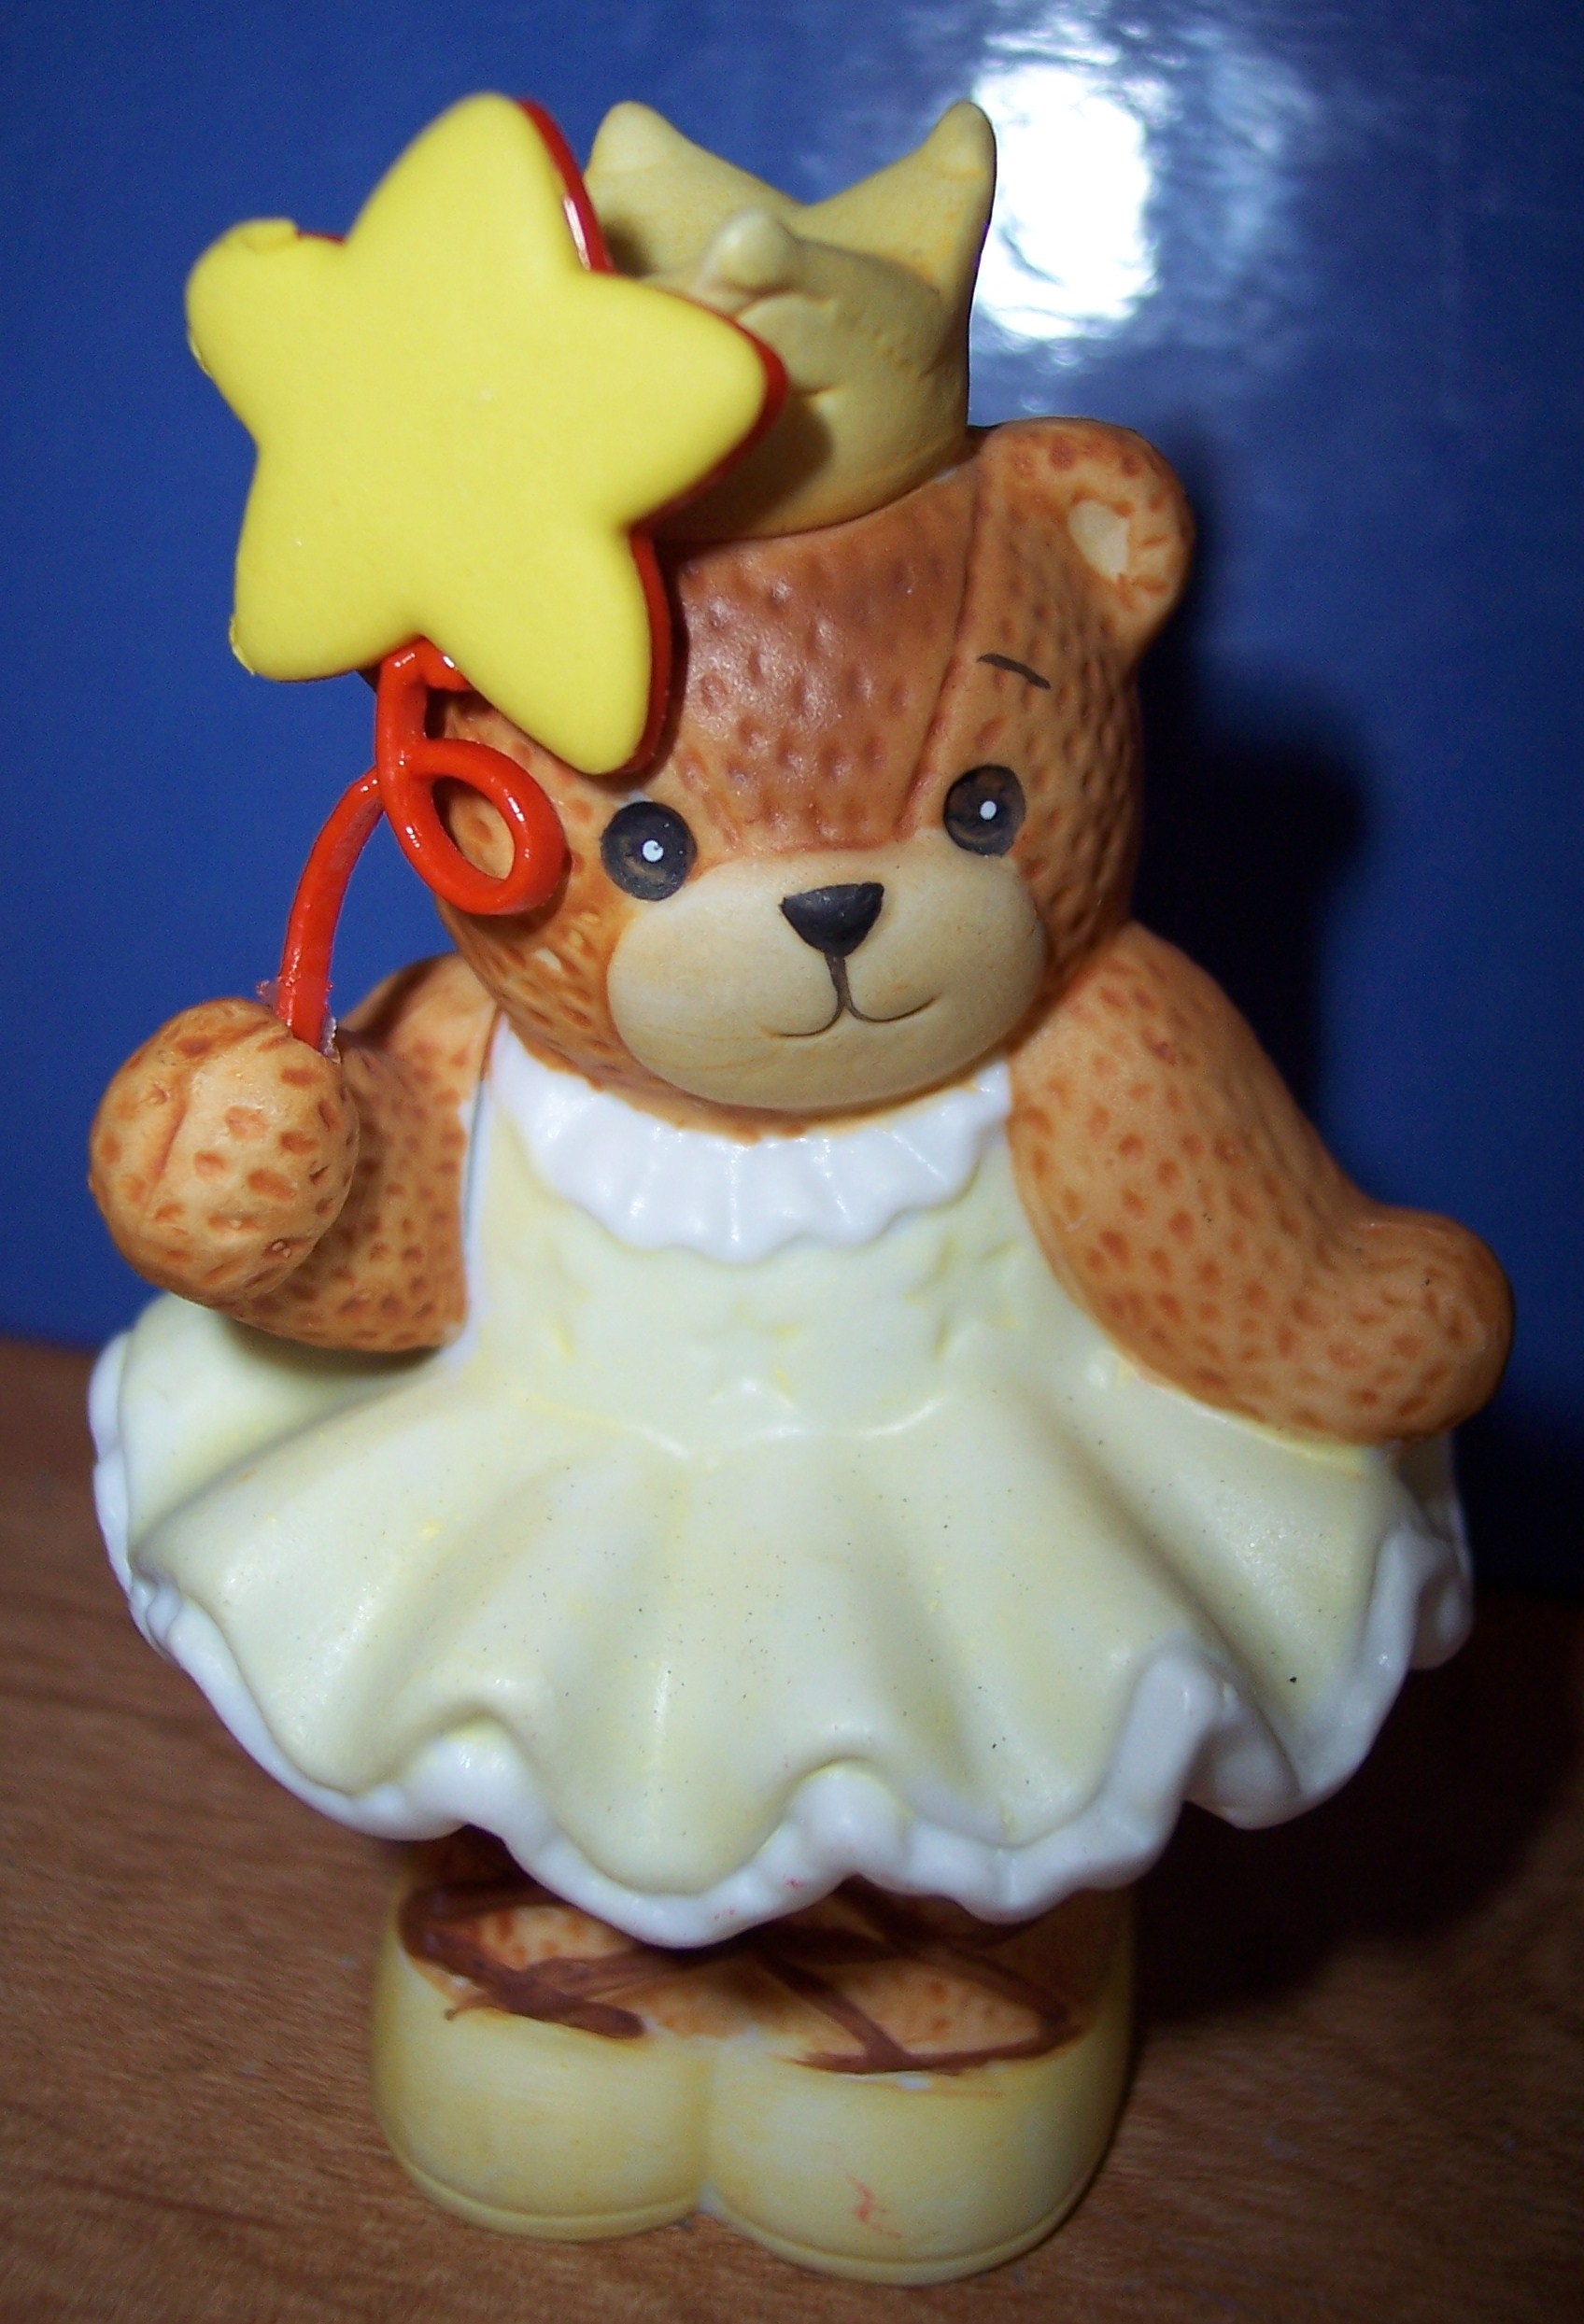 Altered bear ballerina bear w/star